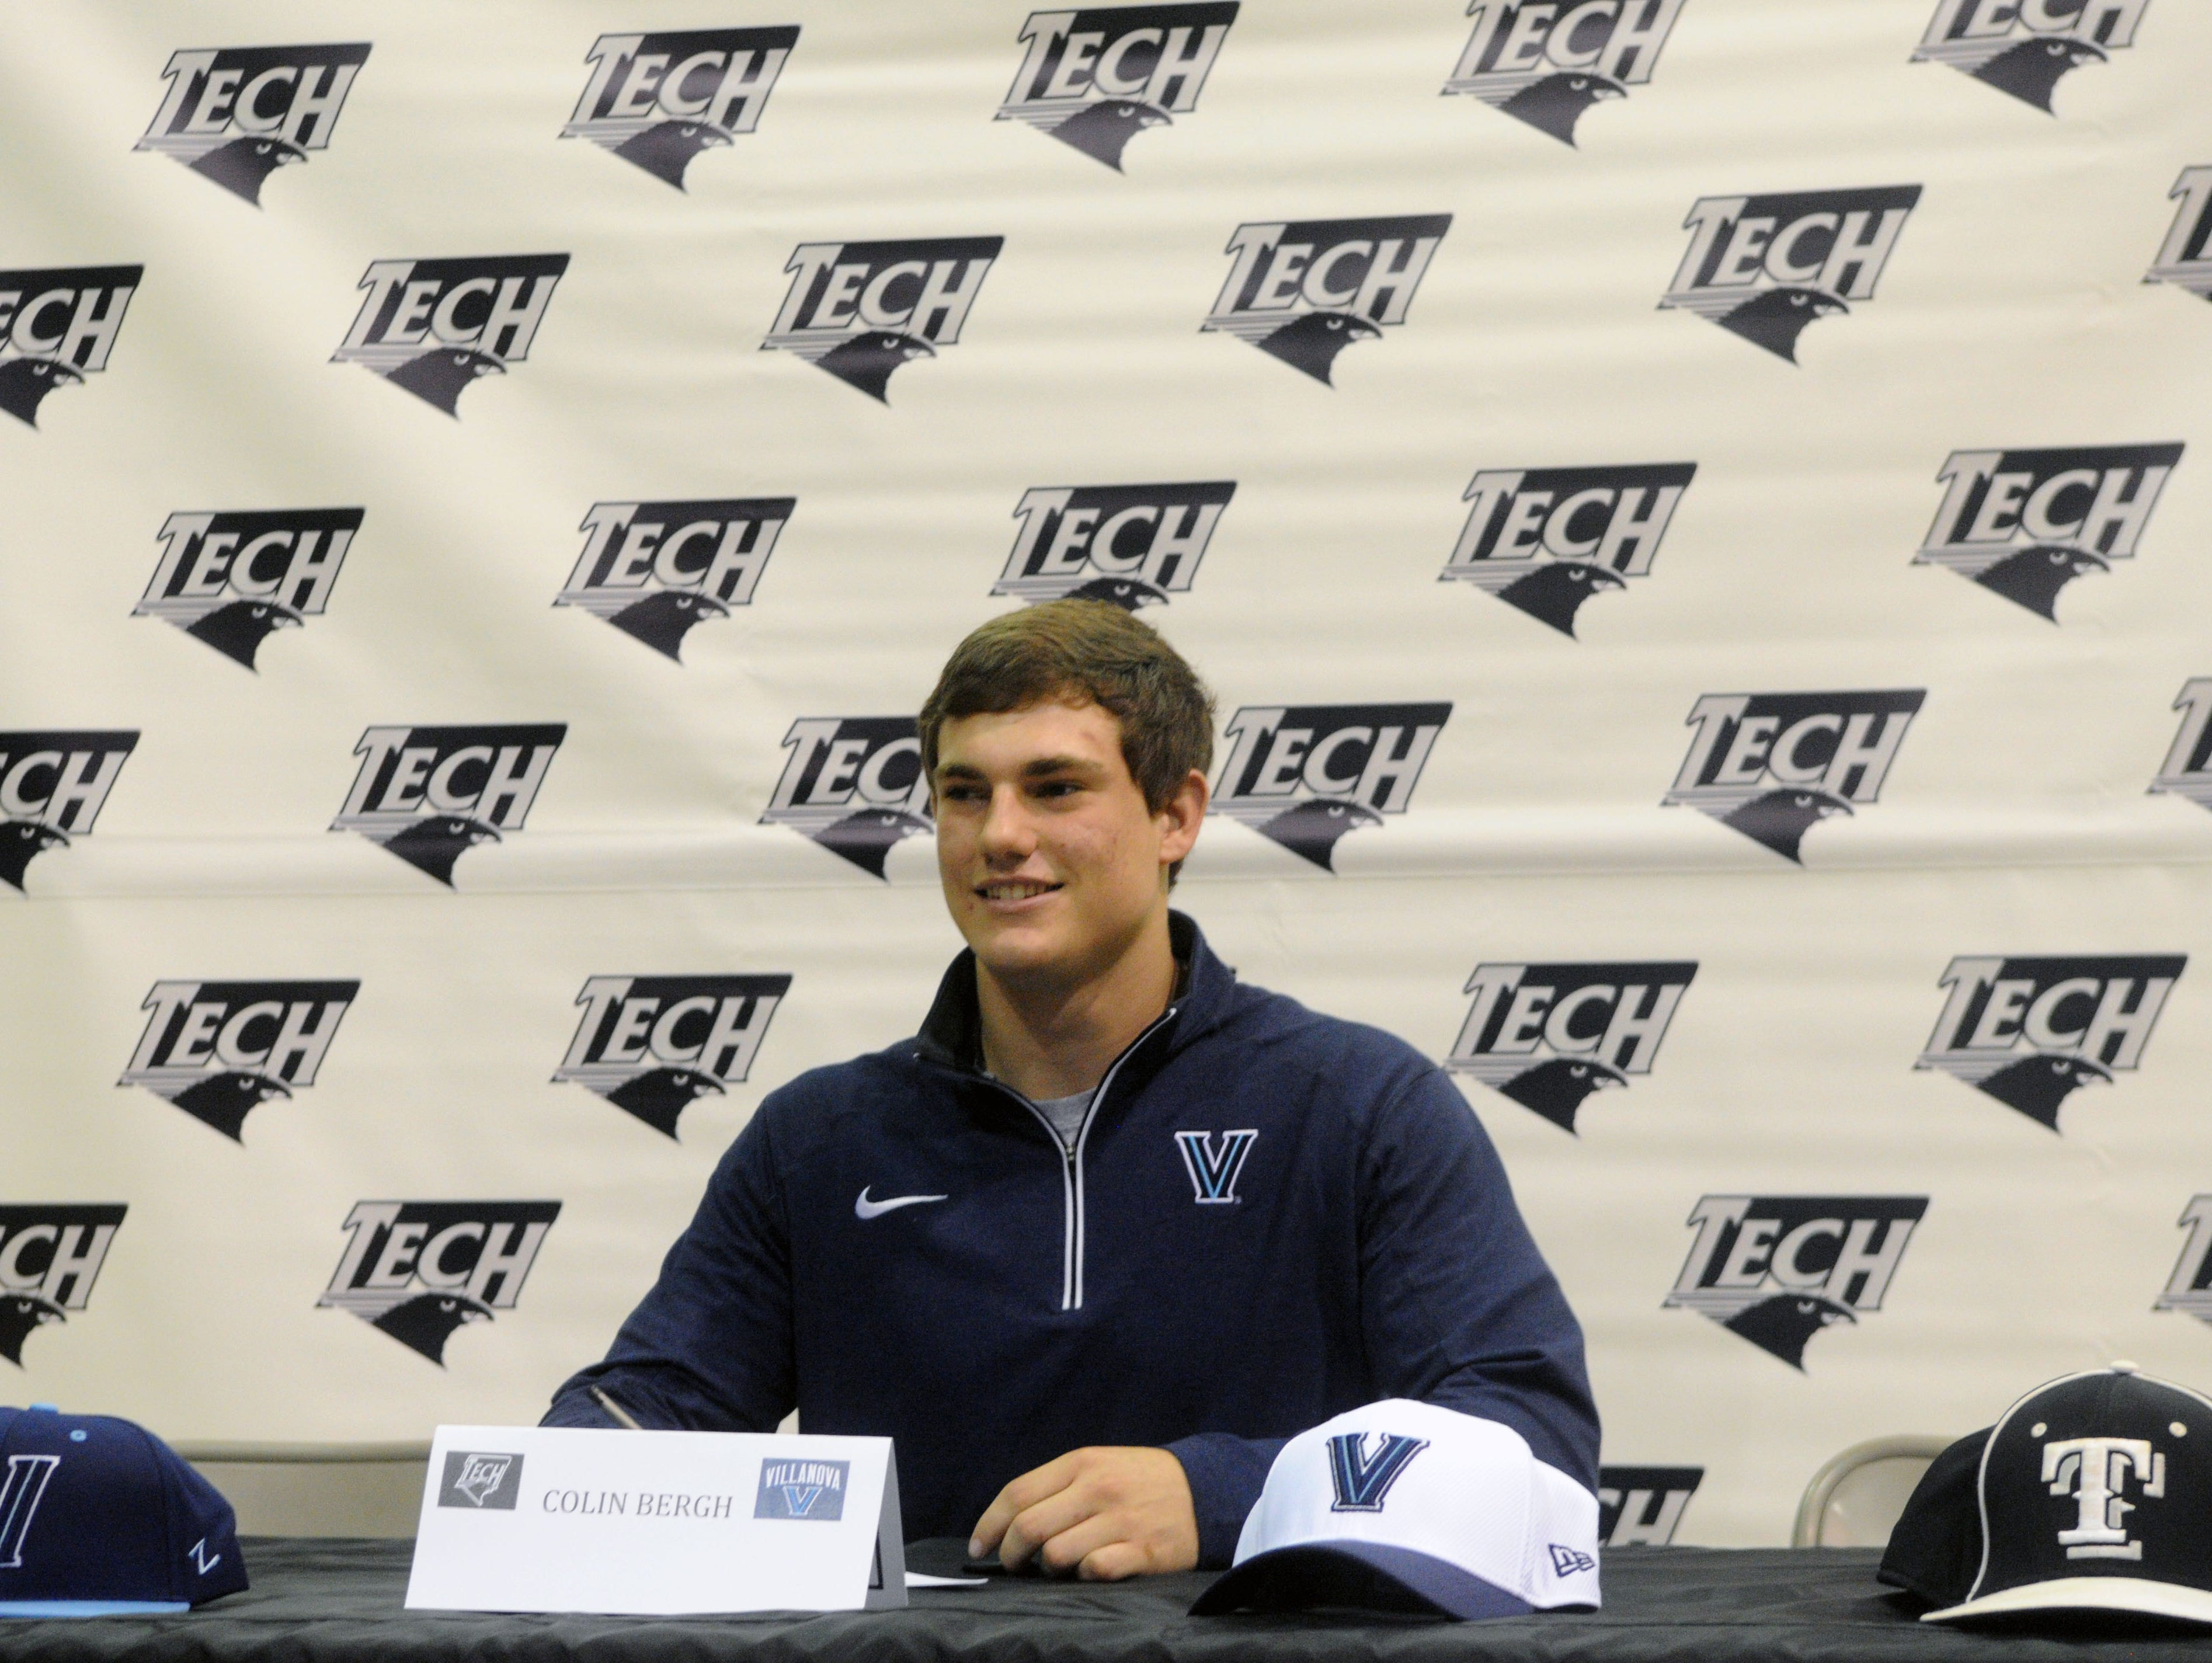 Sussex Tech's Colin Bergh signs his national letter of intent to play baseball at Villanova.